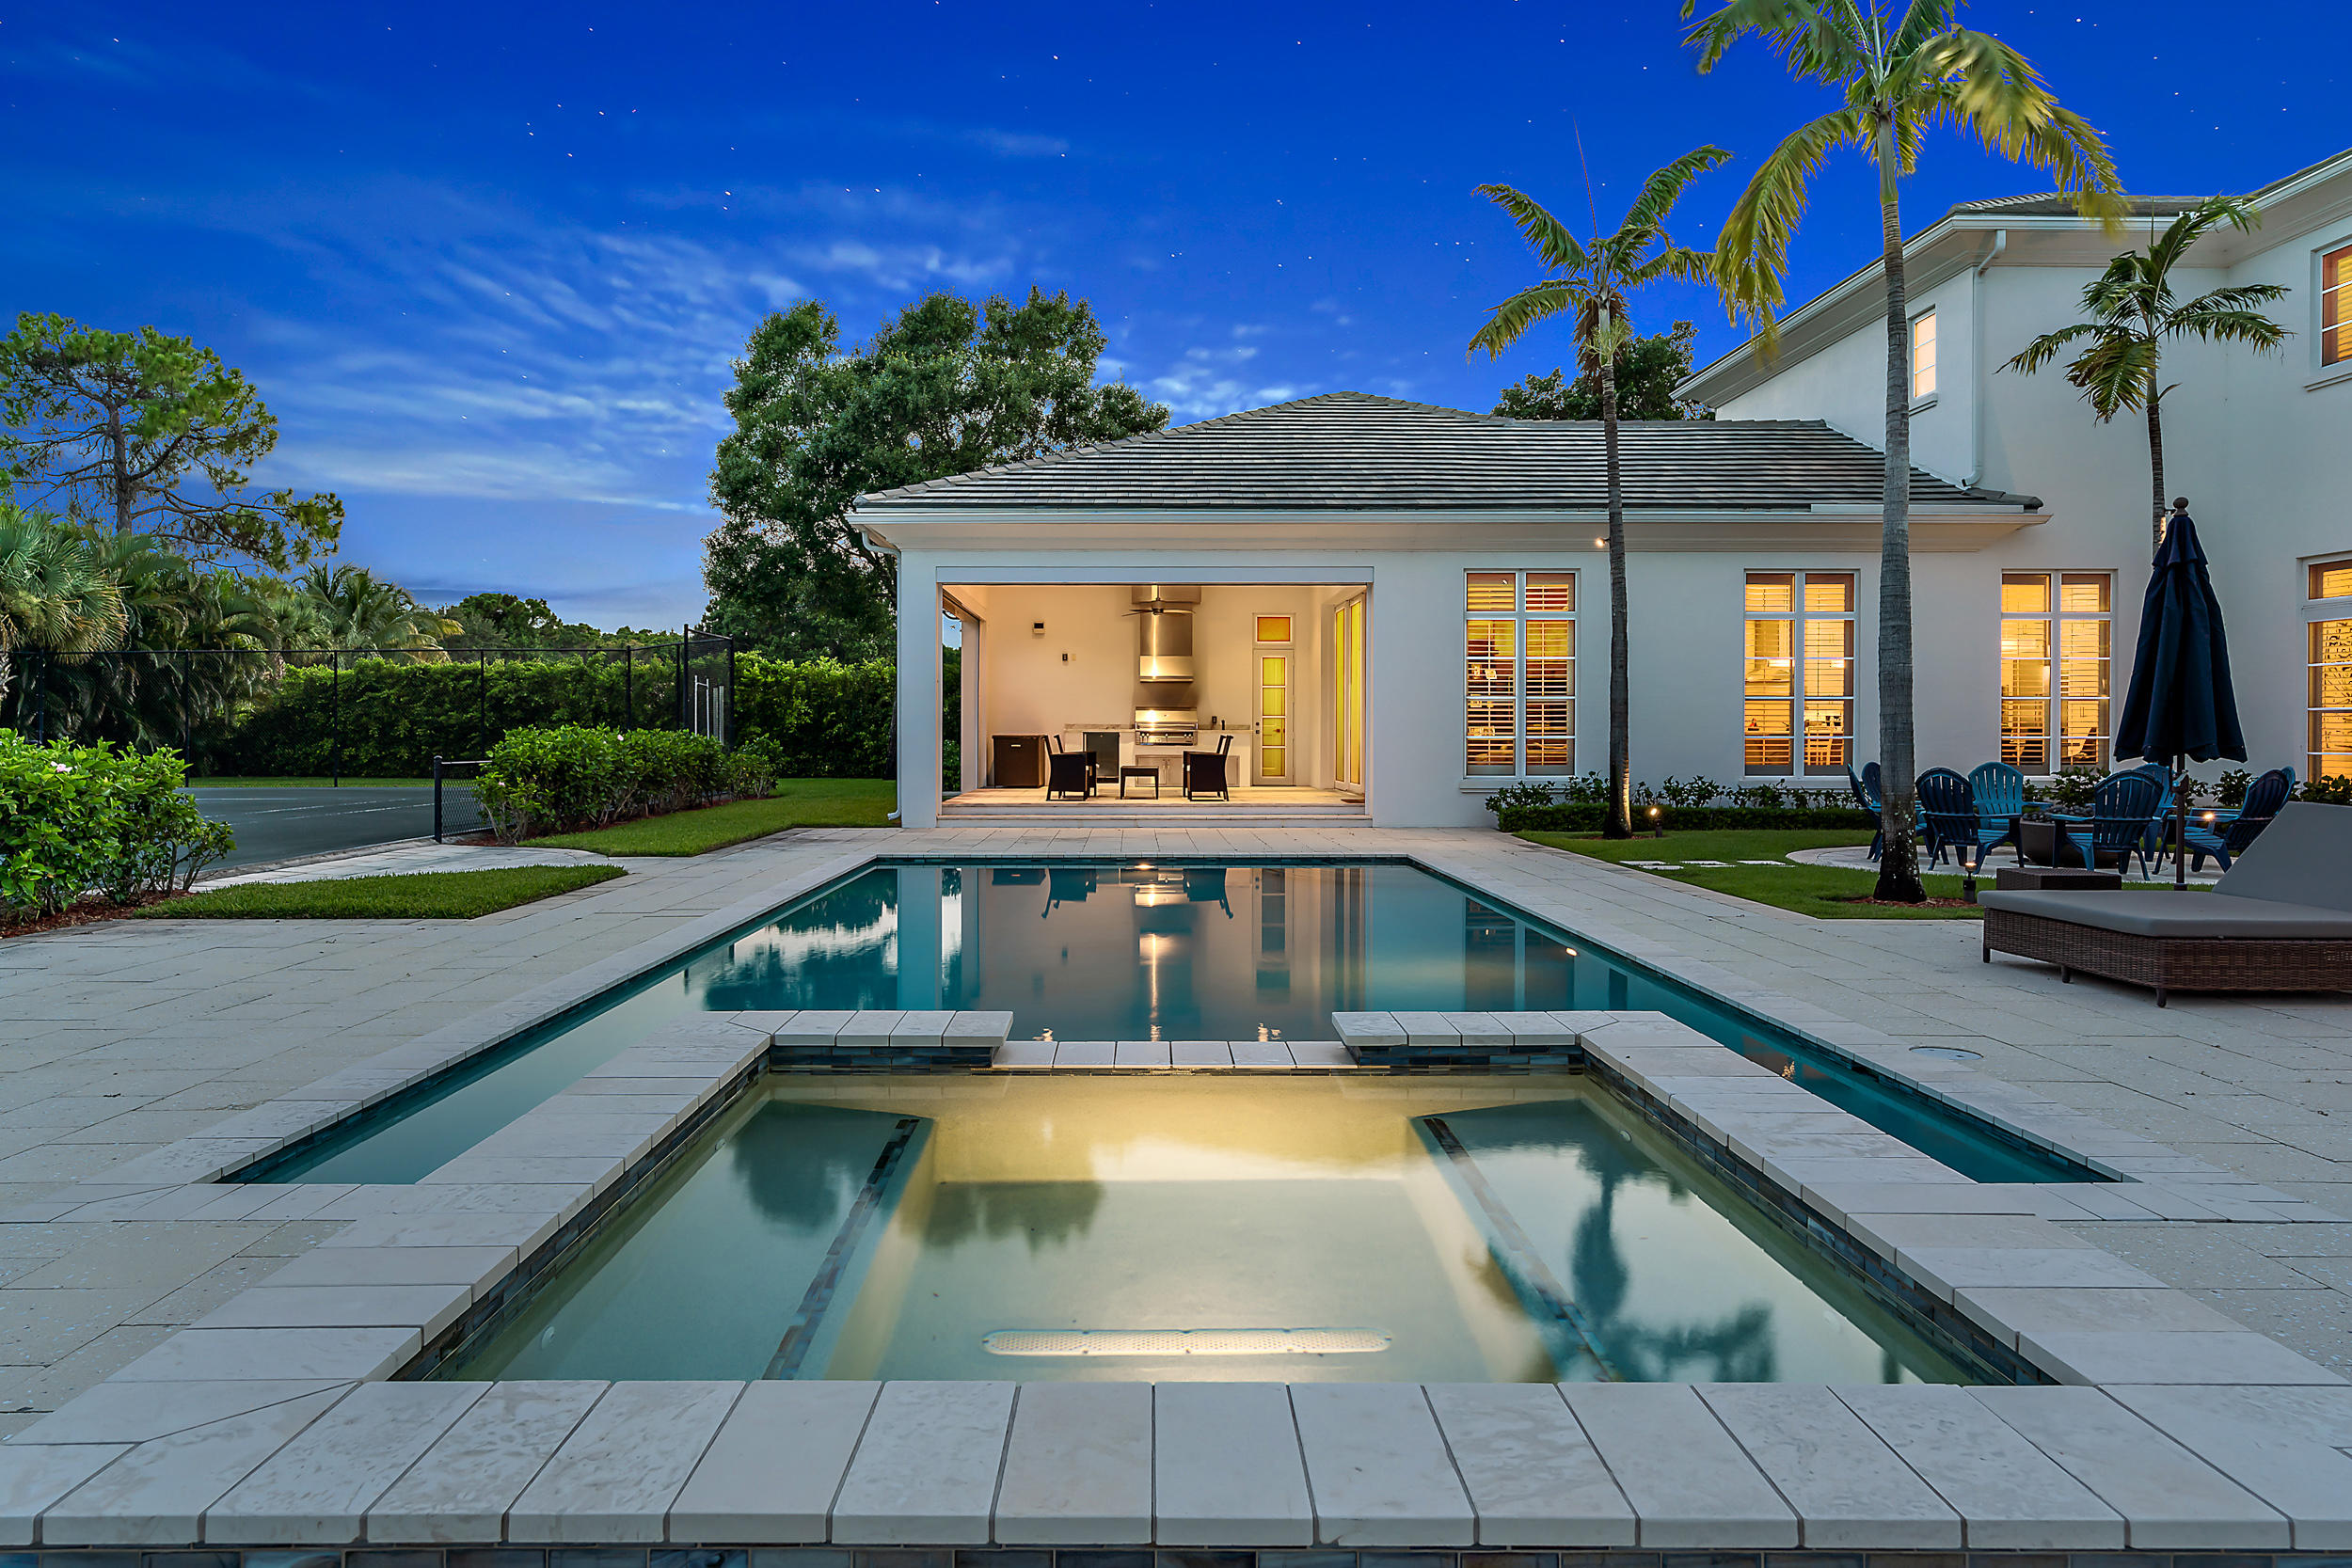 HORSESHOE ACRES PALM BEACH GARDENS REAL ESTATE